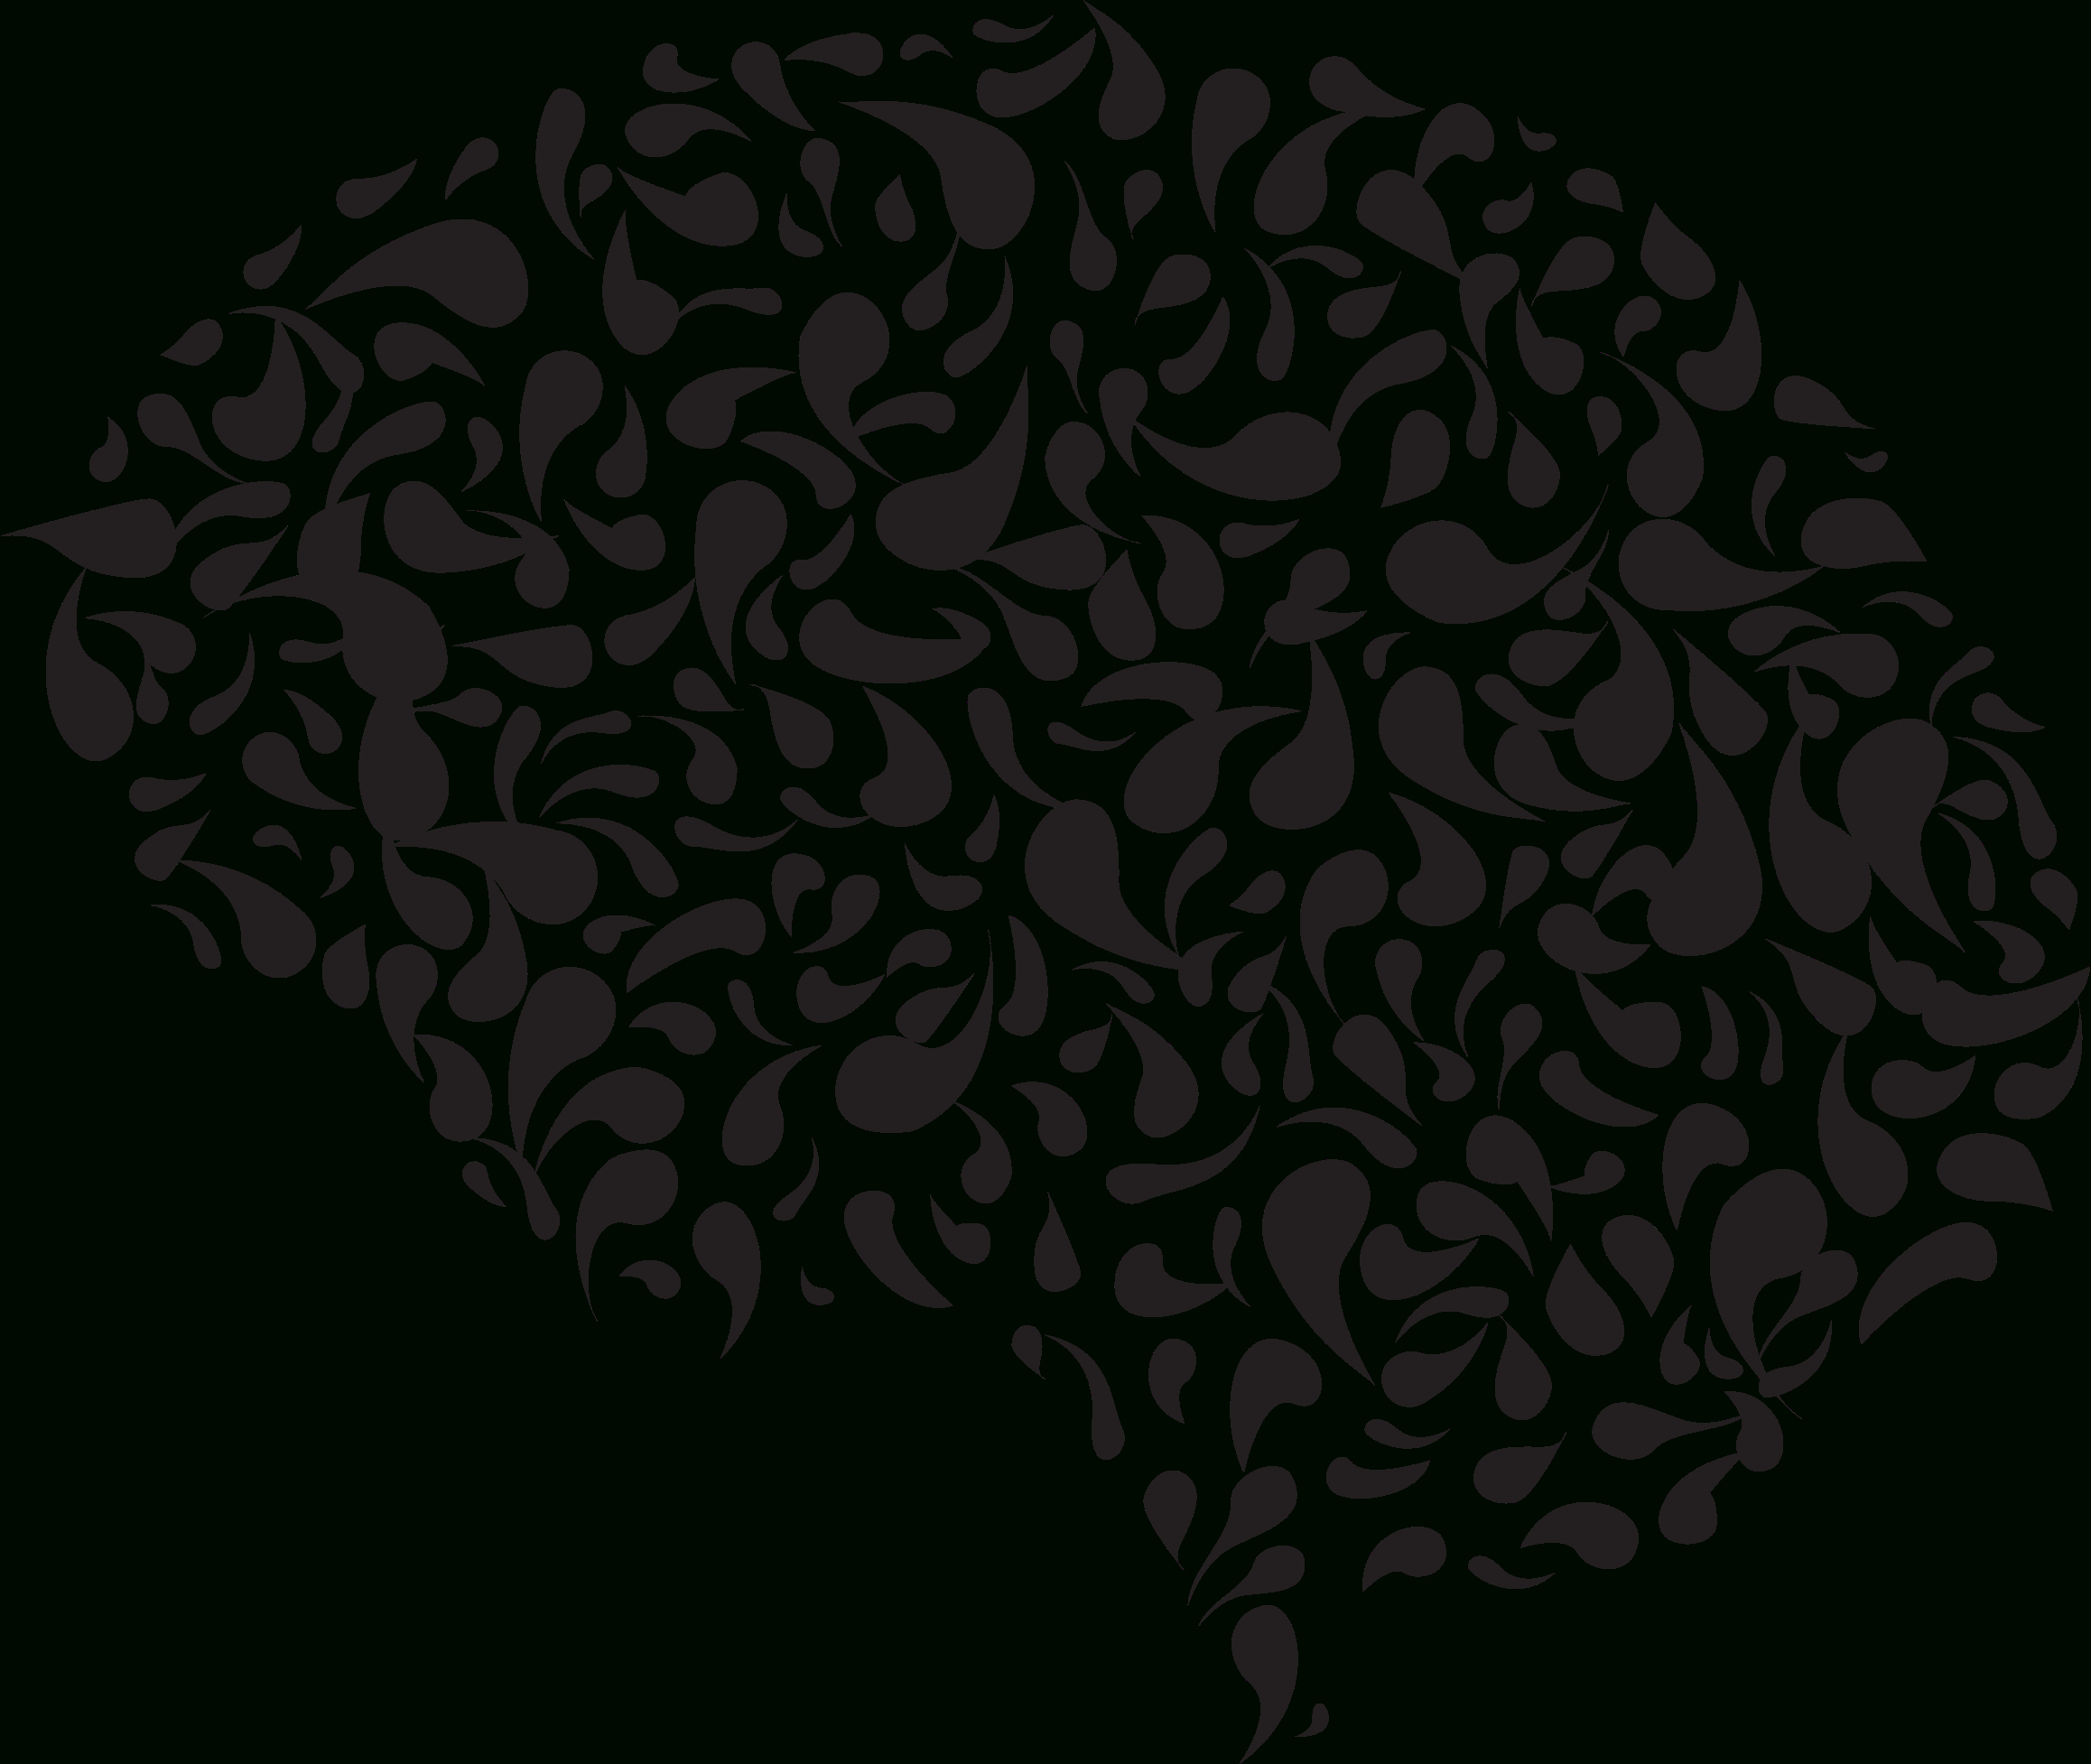 graphic royalty free stock Psychology drawing abstract. Brain and huge